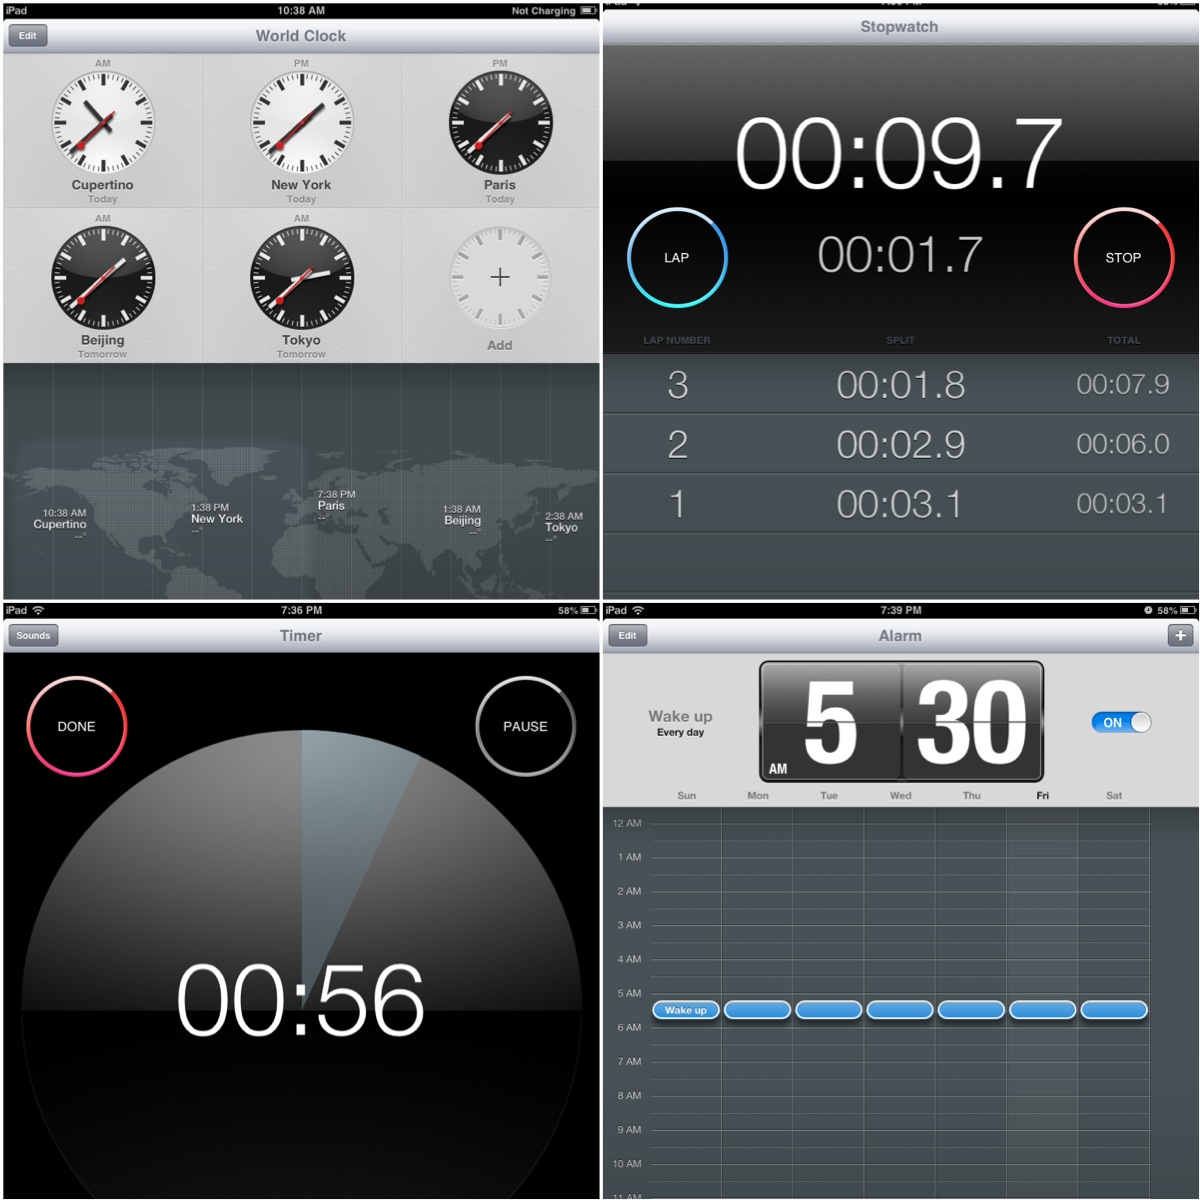 Hands on with iOS 6 Software Update on iPad 2 Clock App